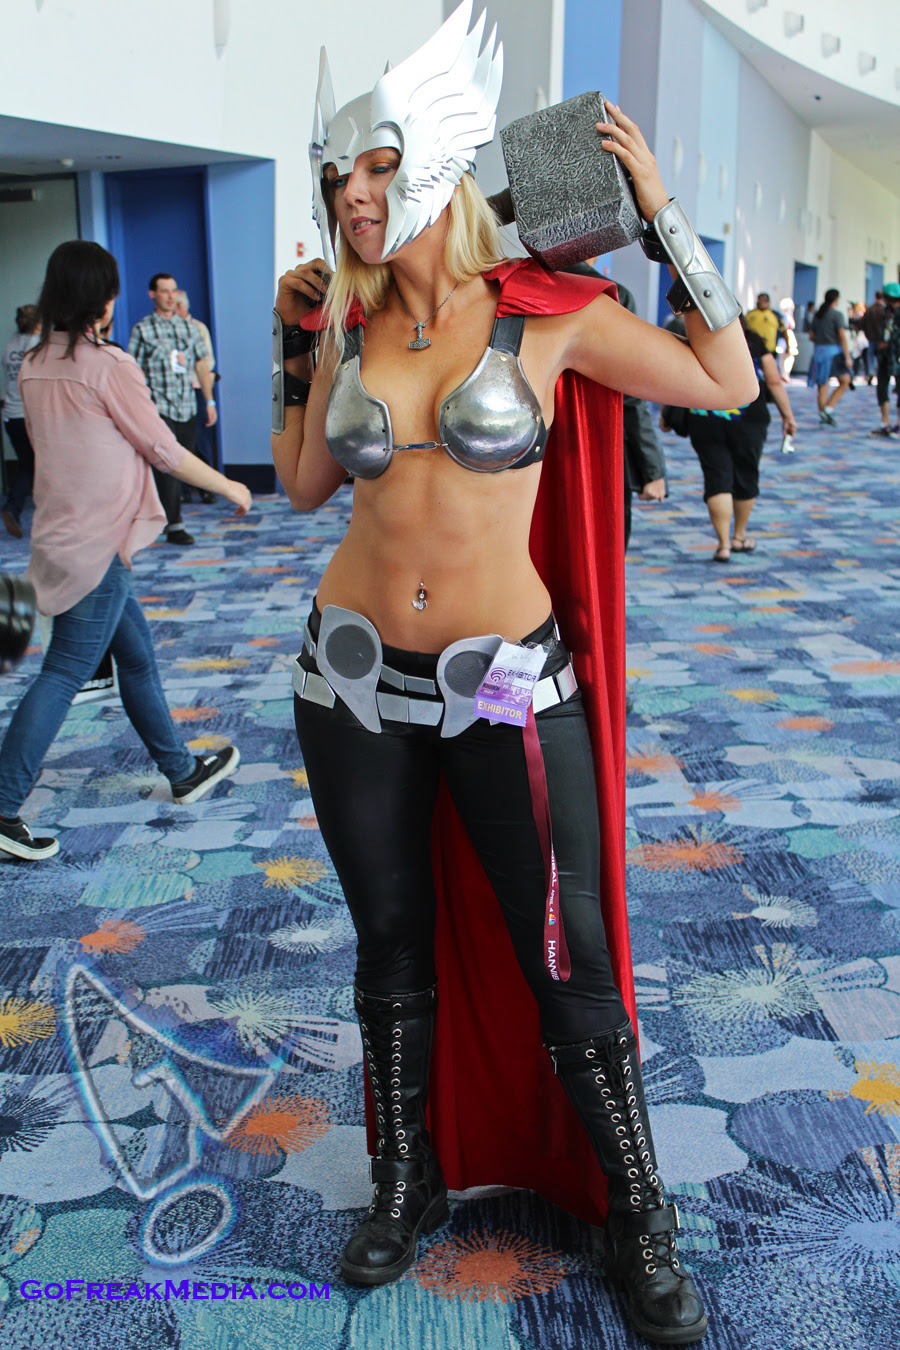 http://img3.wikia.nocookie.net/__cb20130701004217/cosplay/images/5/5b/Female_thor_cosplay_wondercon_2013.jpg